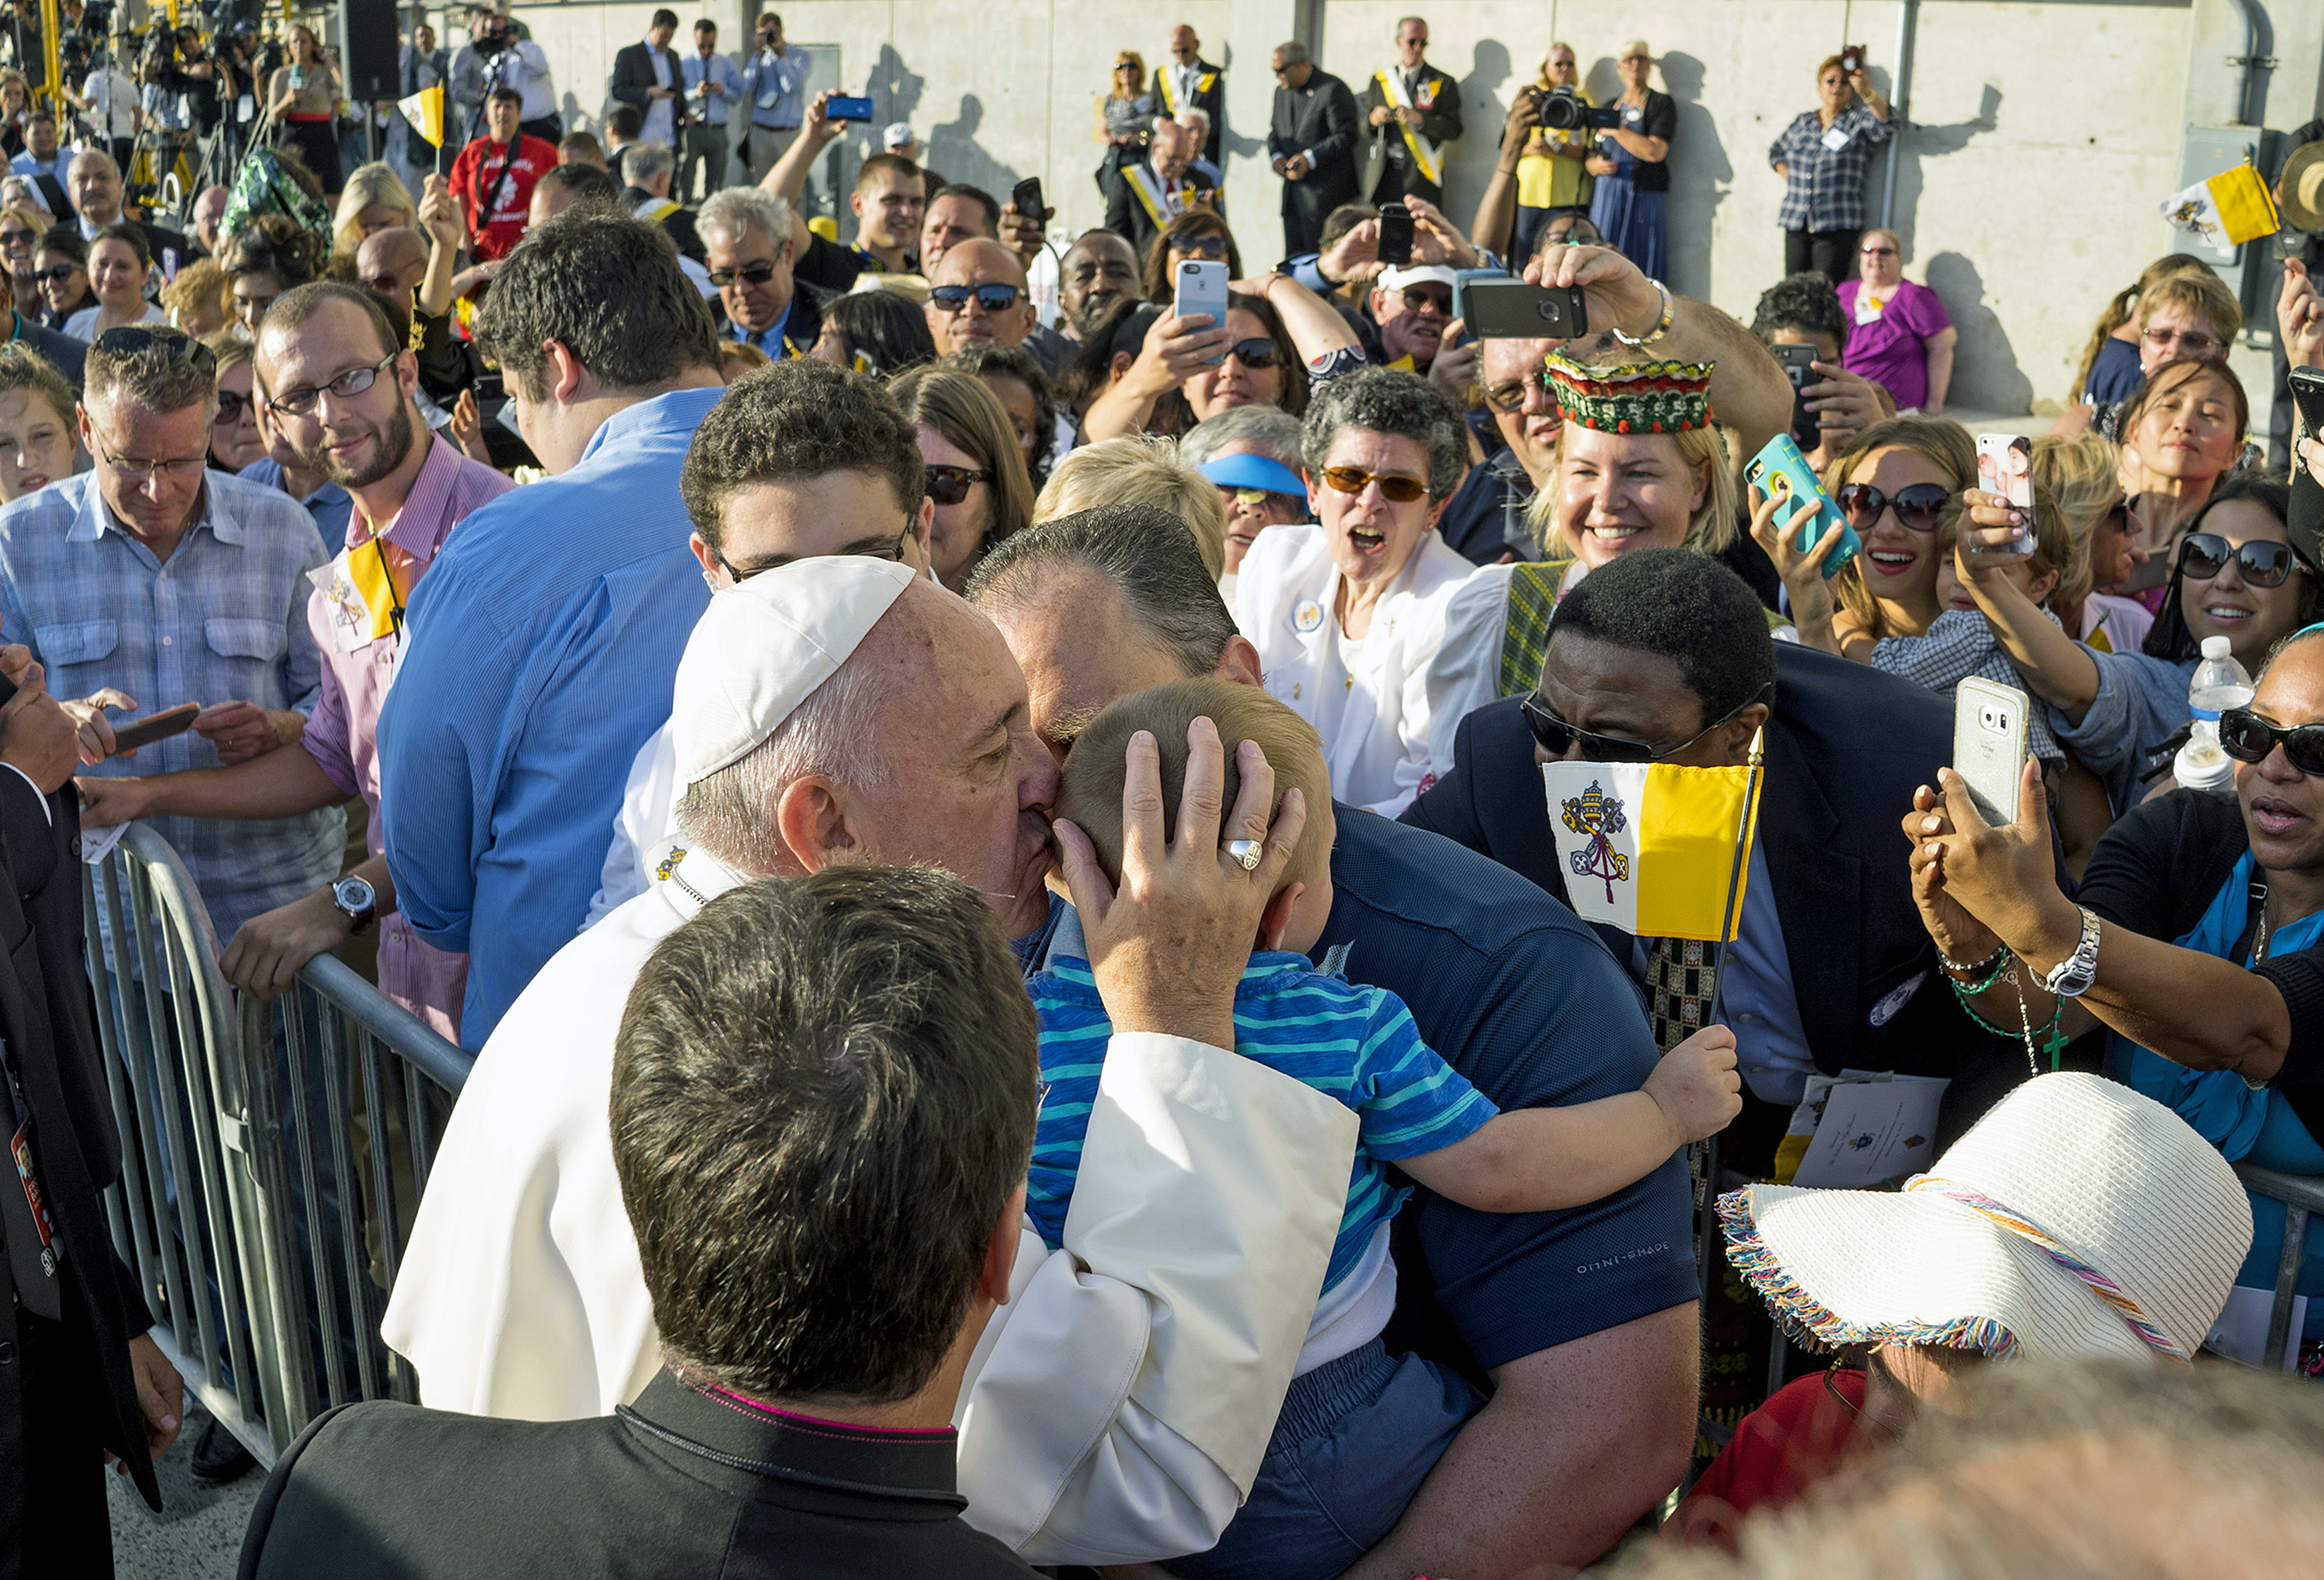 Pope Francis engages well wishes as he kisses a child after arriving at John F. Kennedy International Airport in New York,  Sept. 24, 2015.